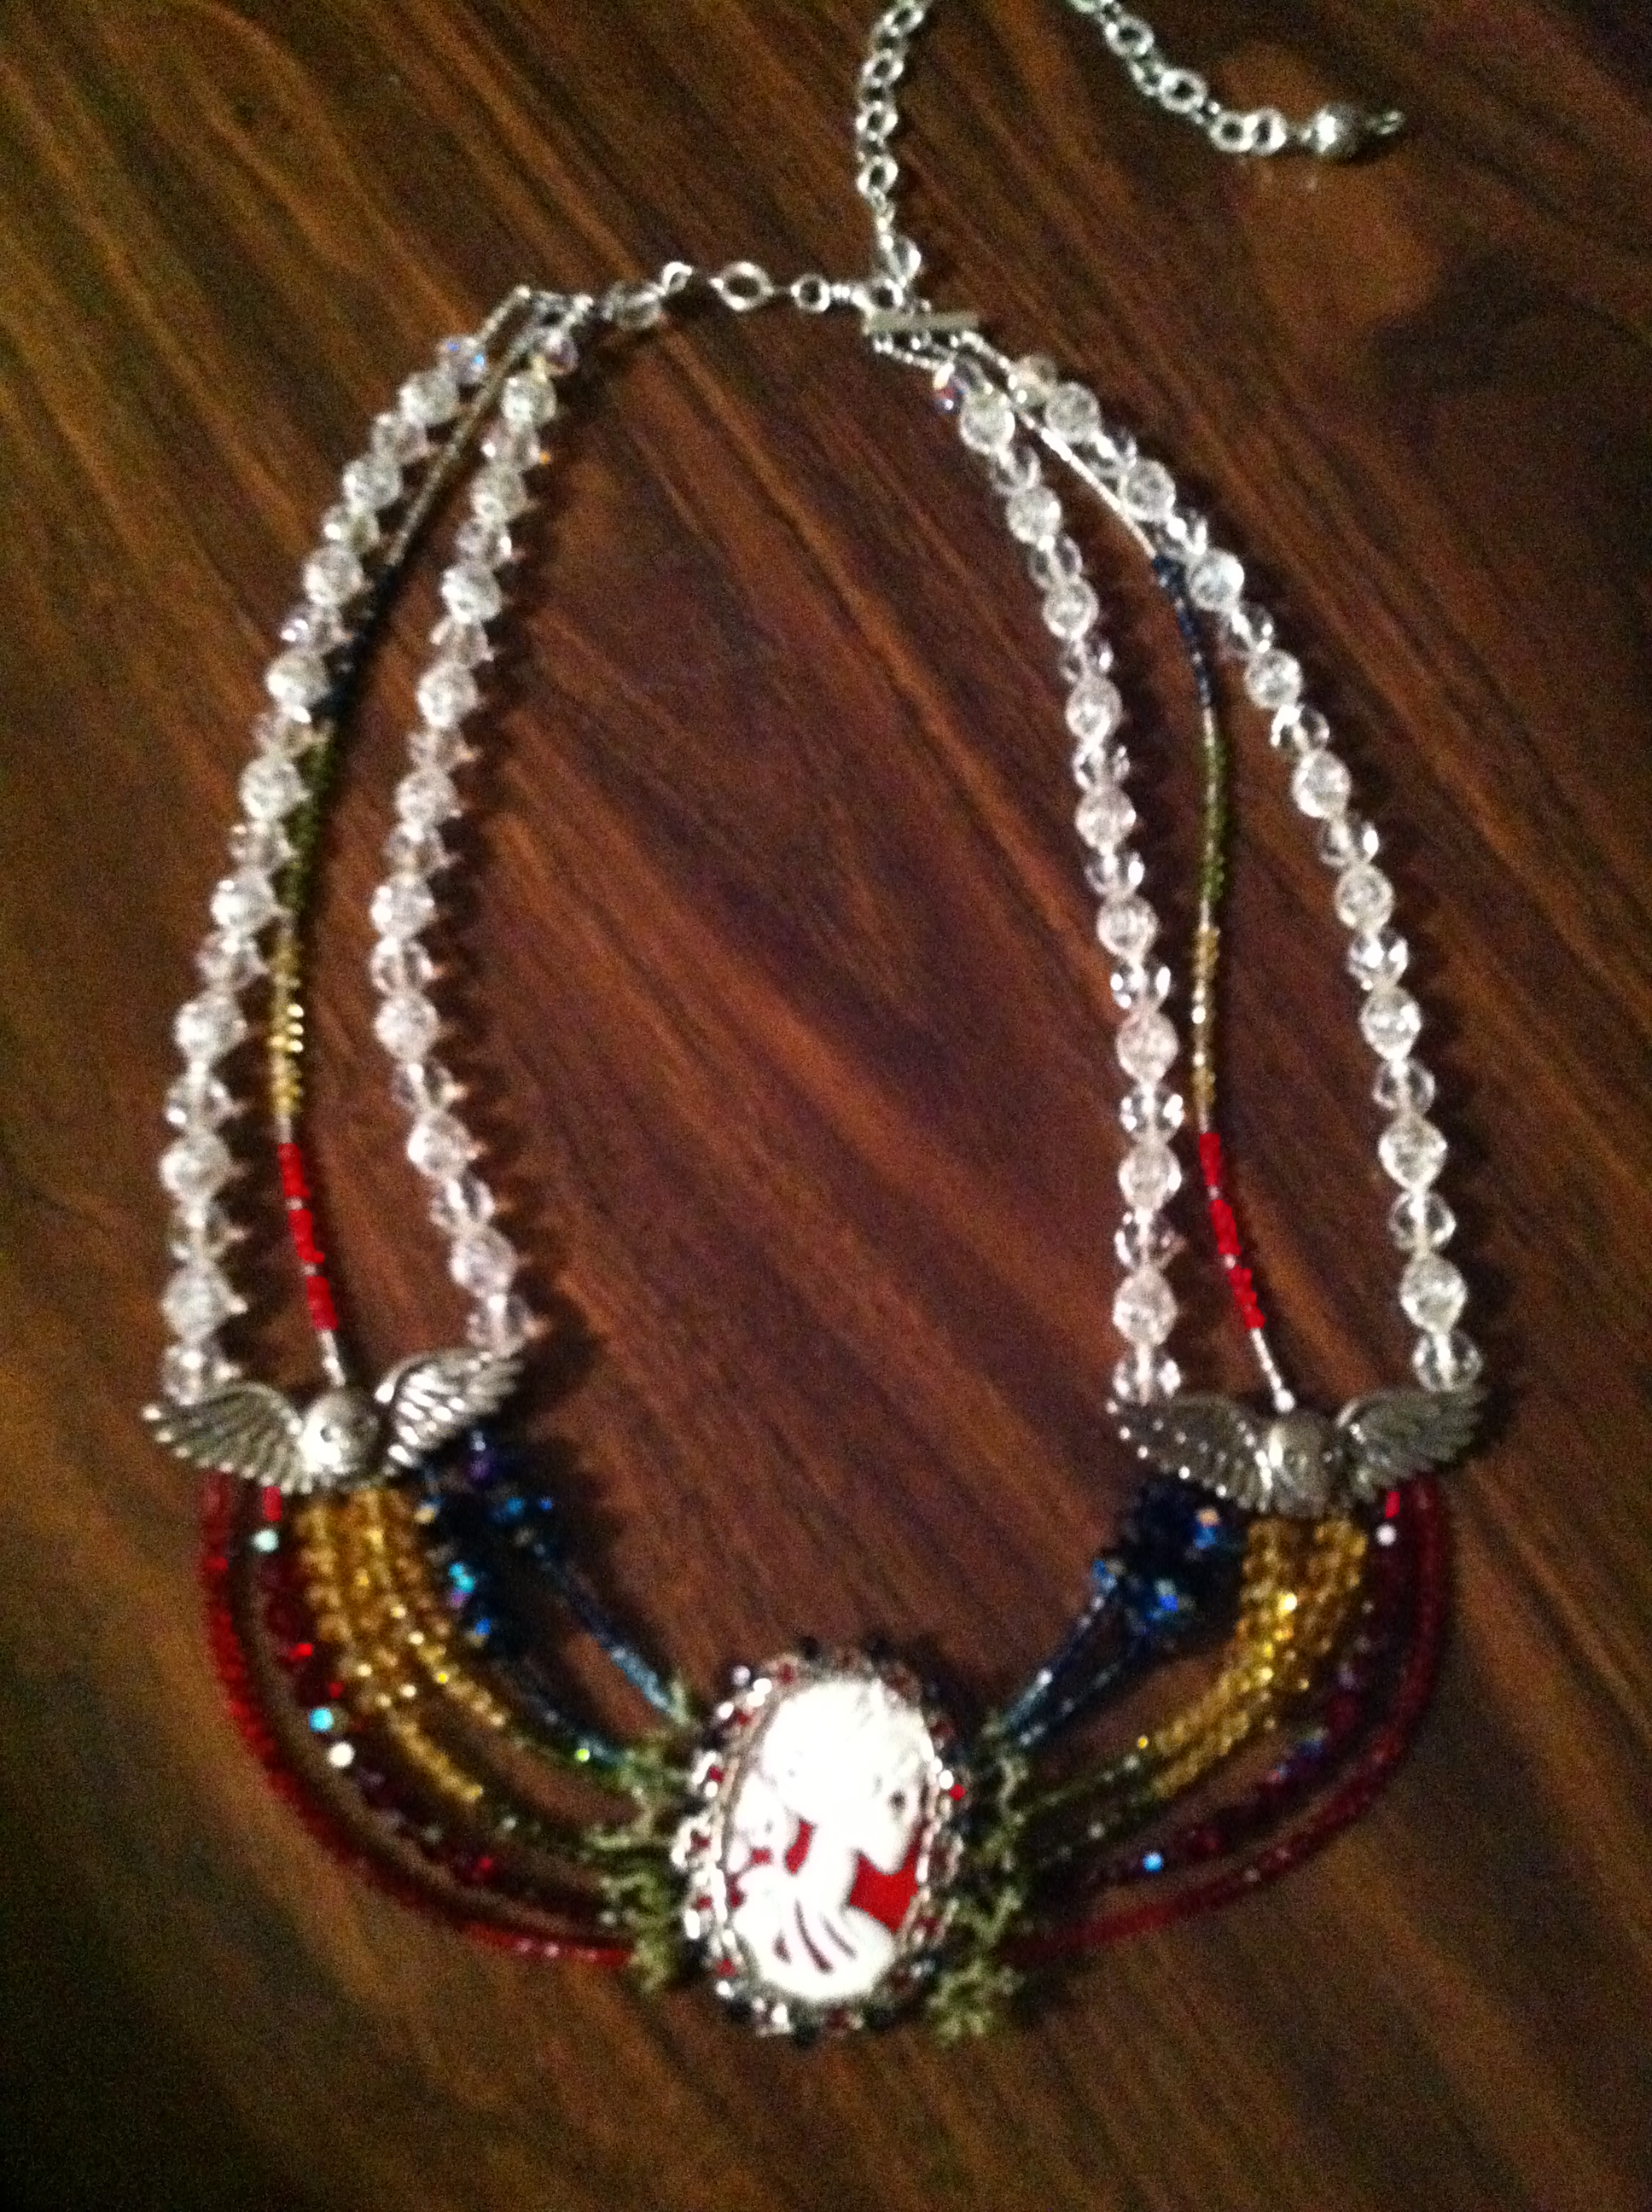 Wood-grain background, on which sits a multi-strand necklace of red, yellow, blue, white, and green crystal, with silver winged skulls and a skeleton lady cameo as centerpiece.